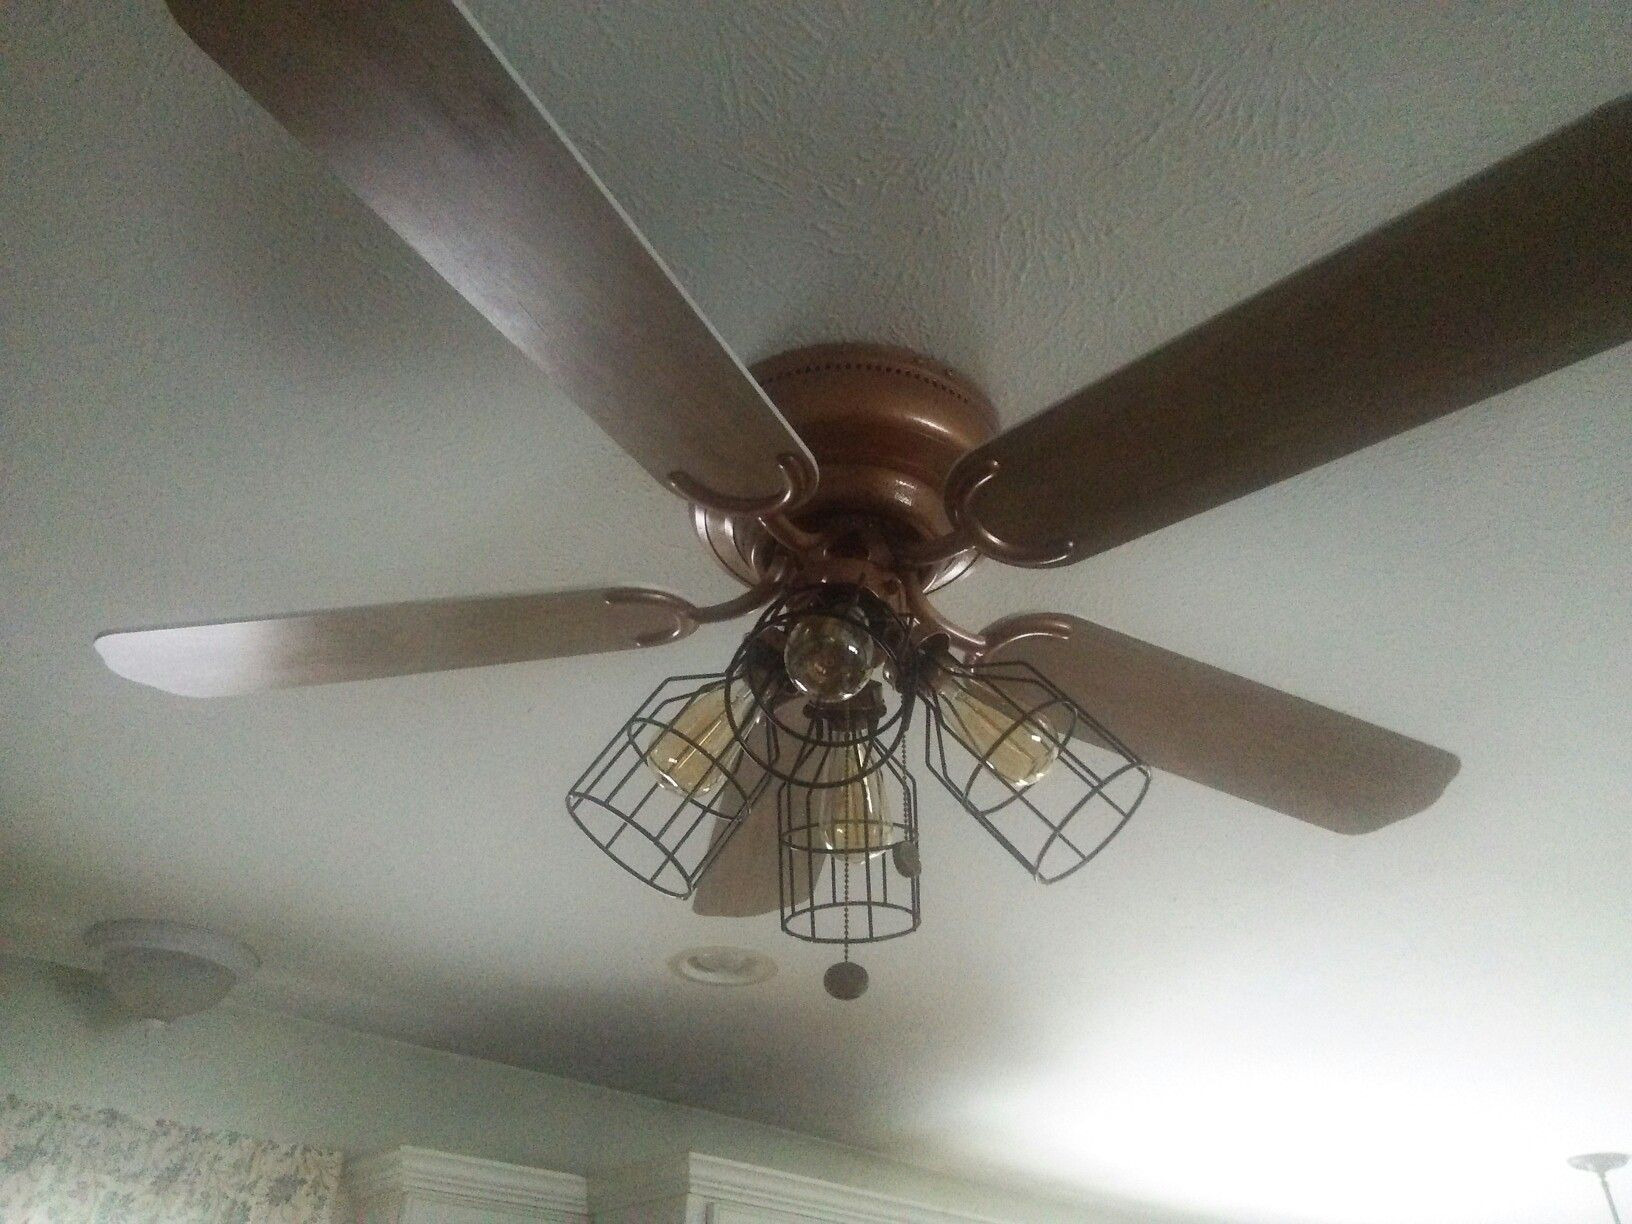 Refurbished ceiling fan from white and gold to hammered bronze refurbished ceiling fan from white and gold to hammered bronze with wire cage globe covers mozeypictures Choice Image